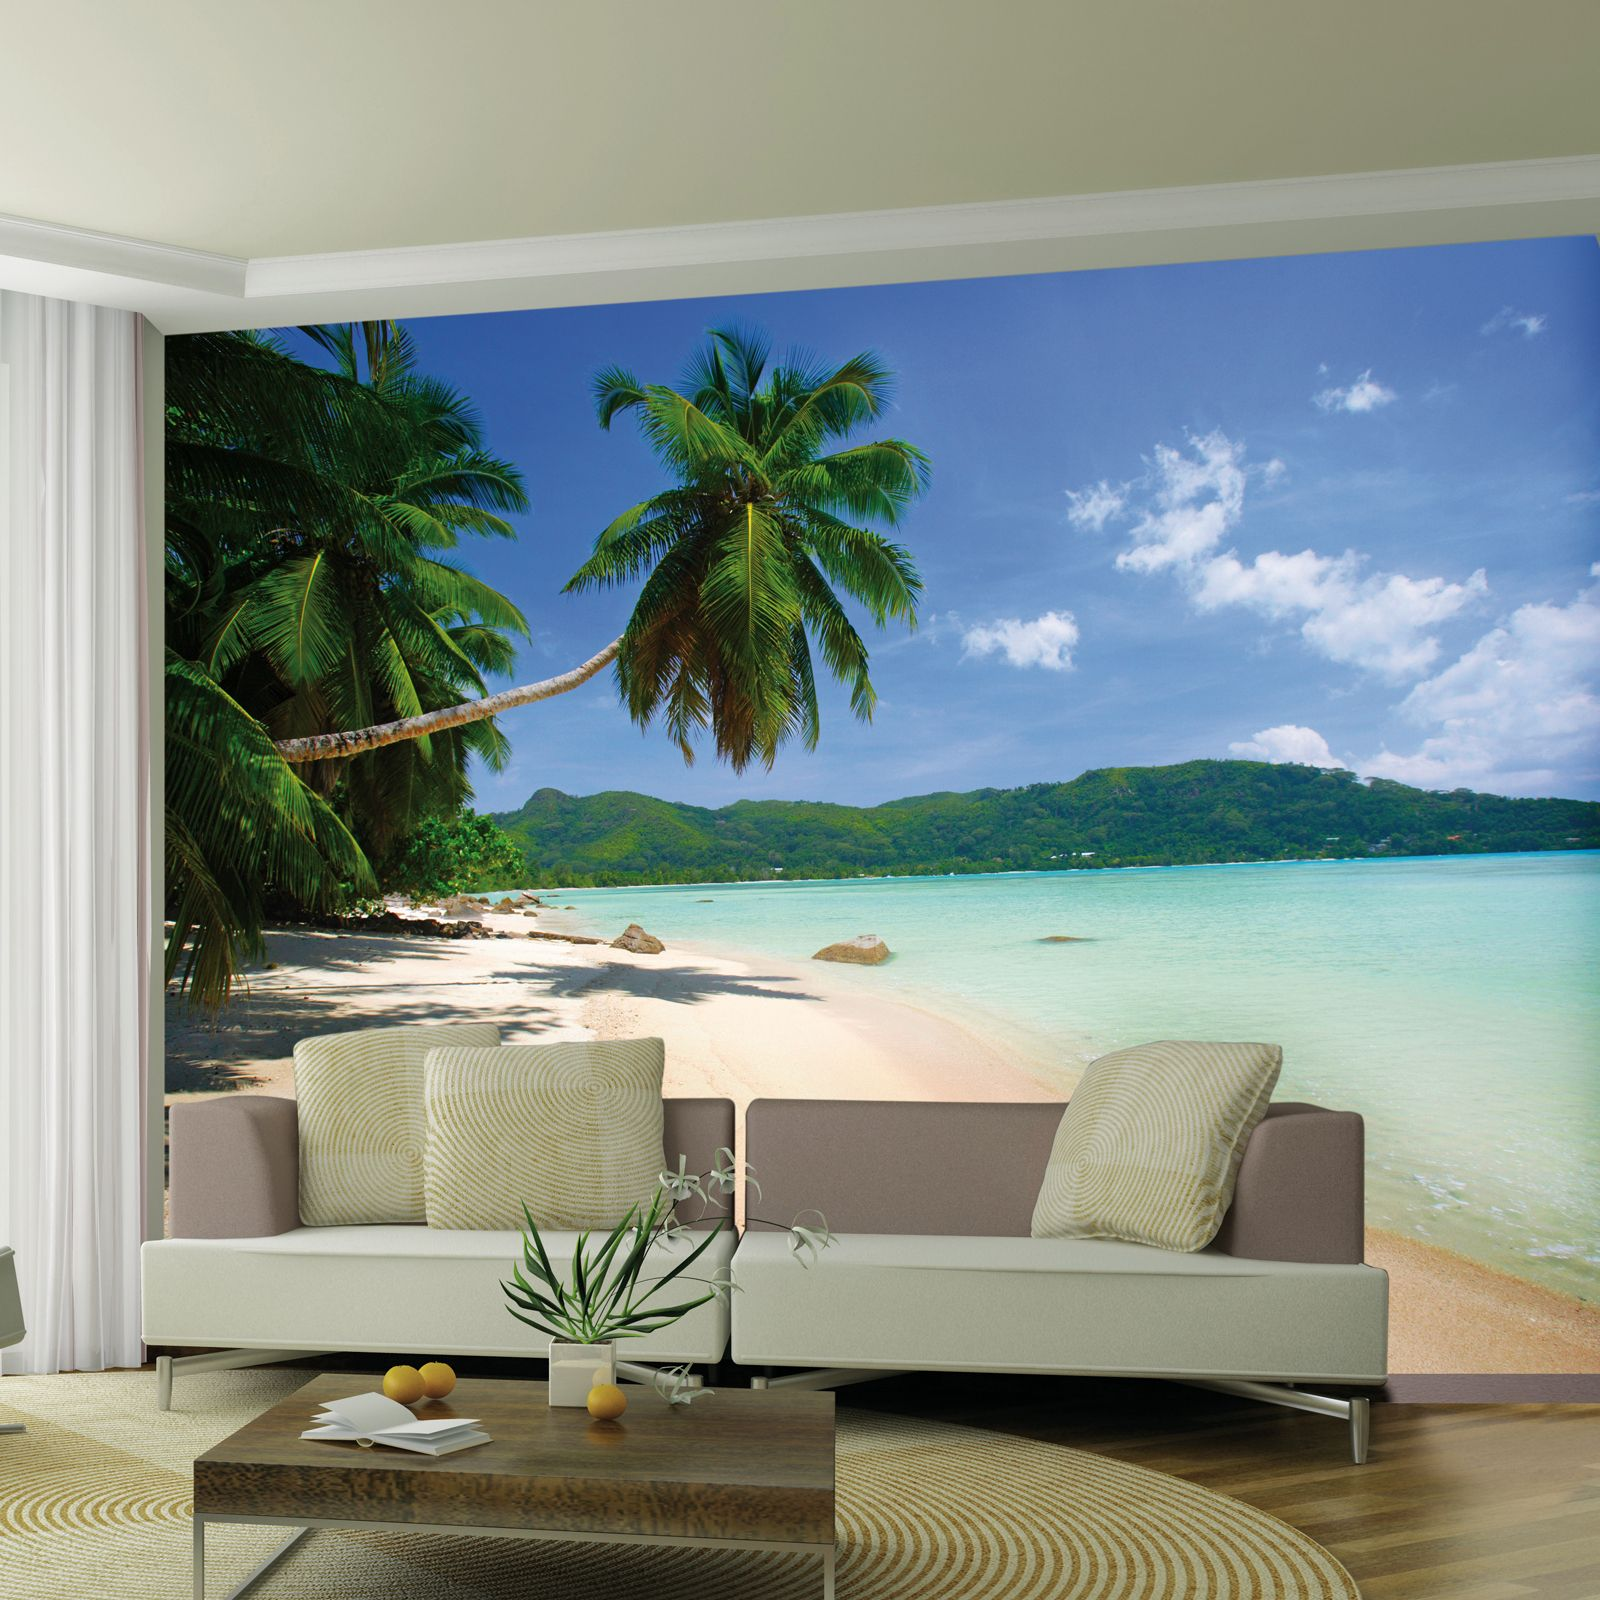 Desert island beach wallpaper wall mural 2 32m x 3 15m for Desert mural wallpaper